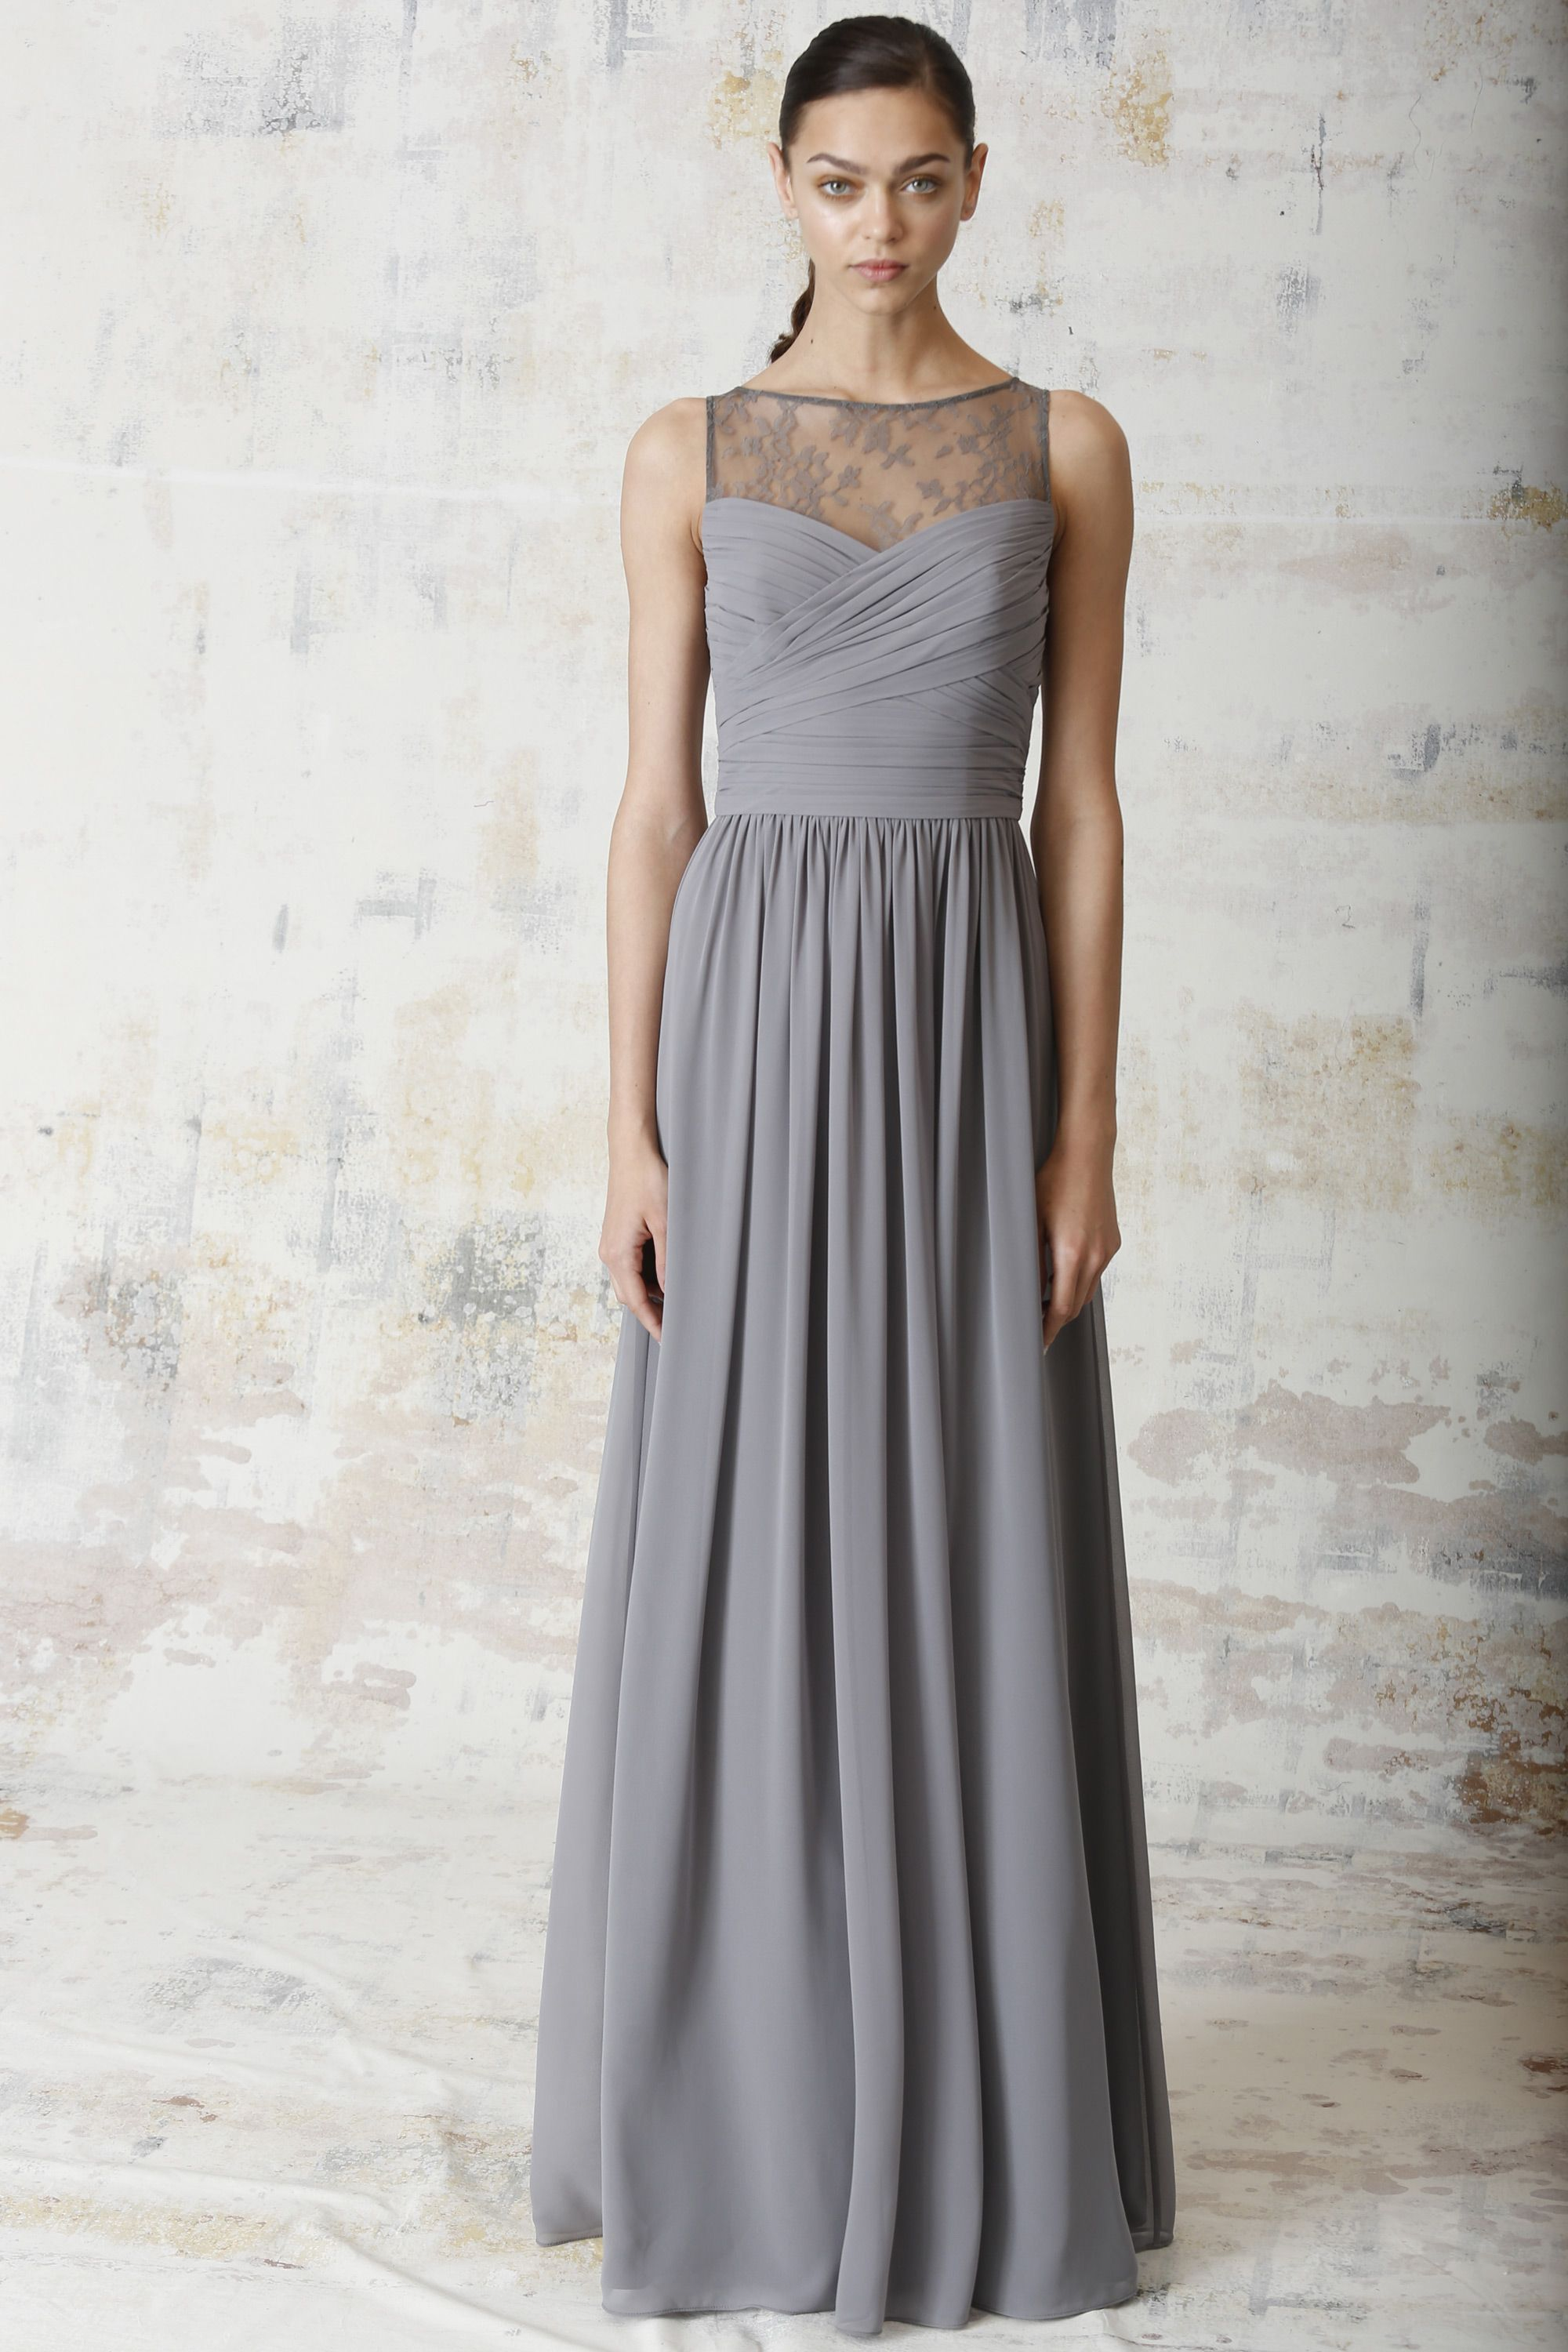 Monique lhullier ss 2015 bridesmaid 450222 slate annie and monique lhuillier bridesmaid dresses runway show spring 2015 ombrellifo Image collections